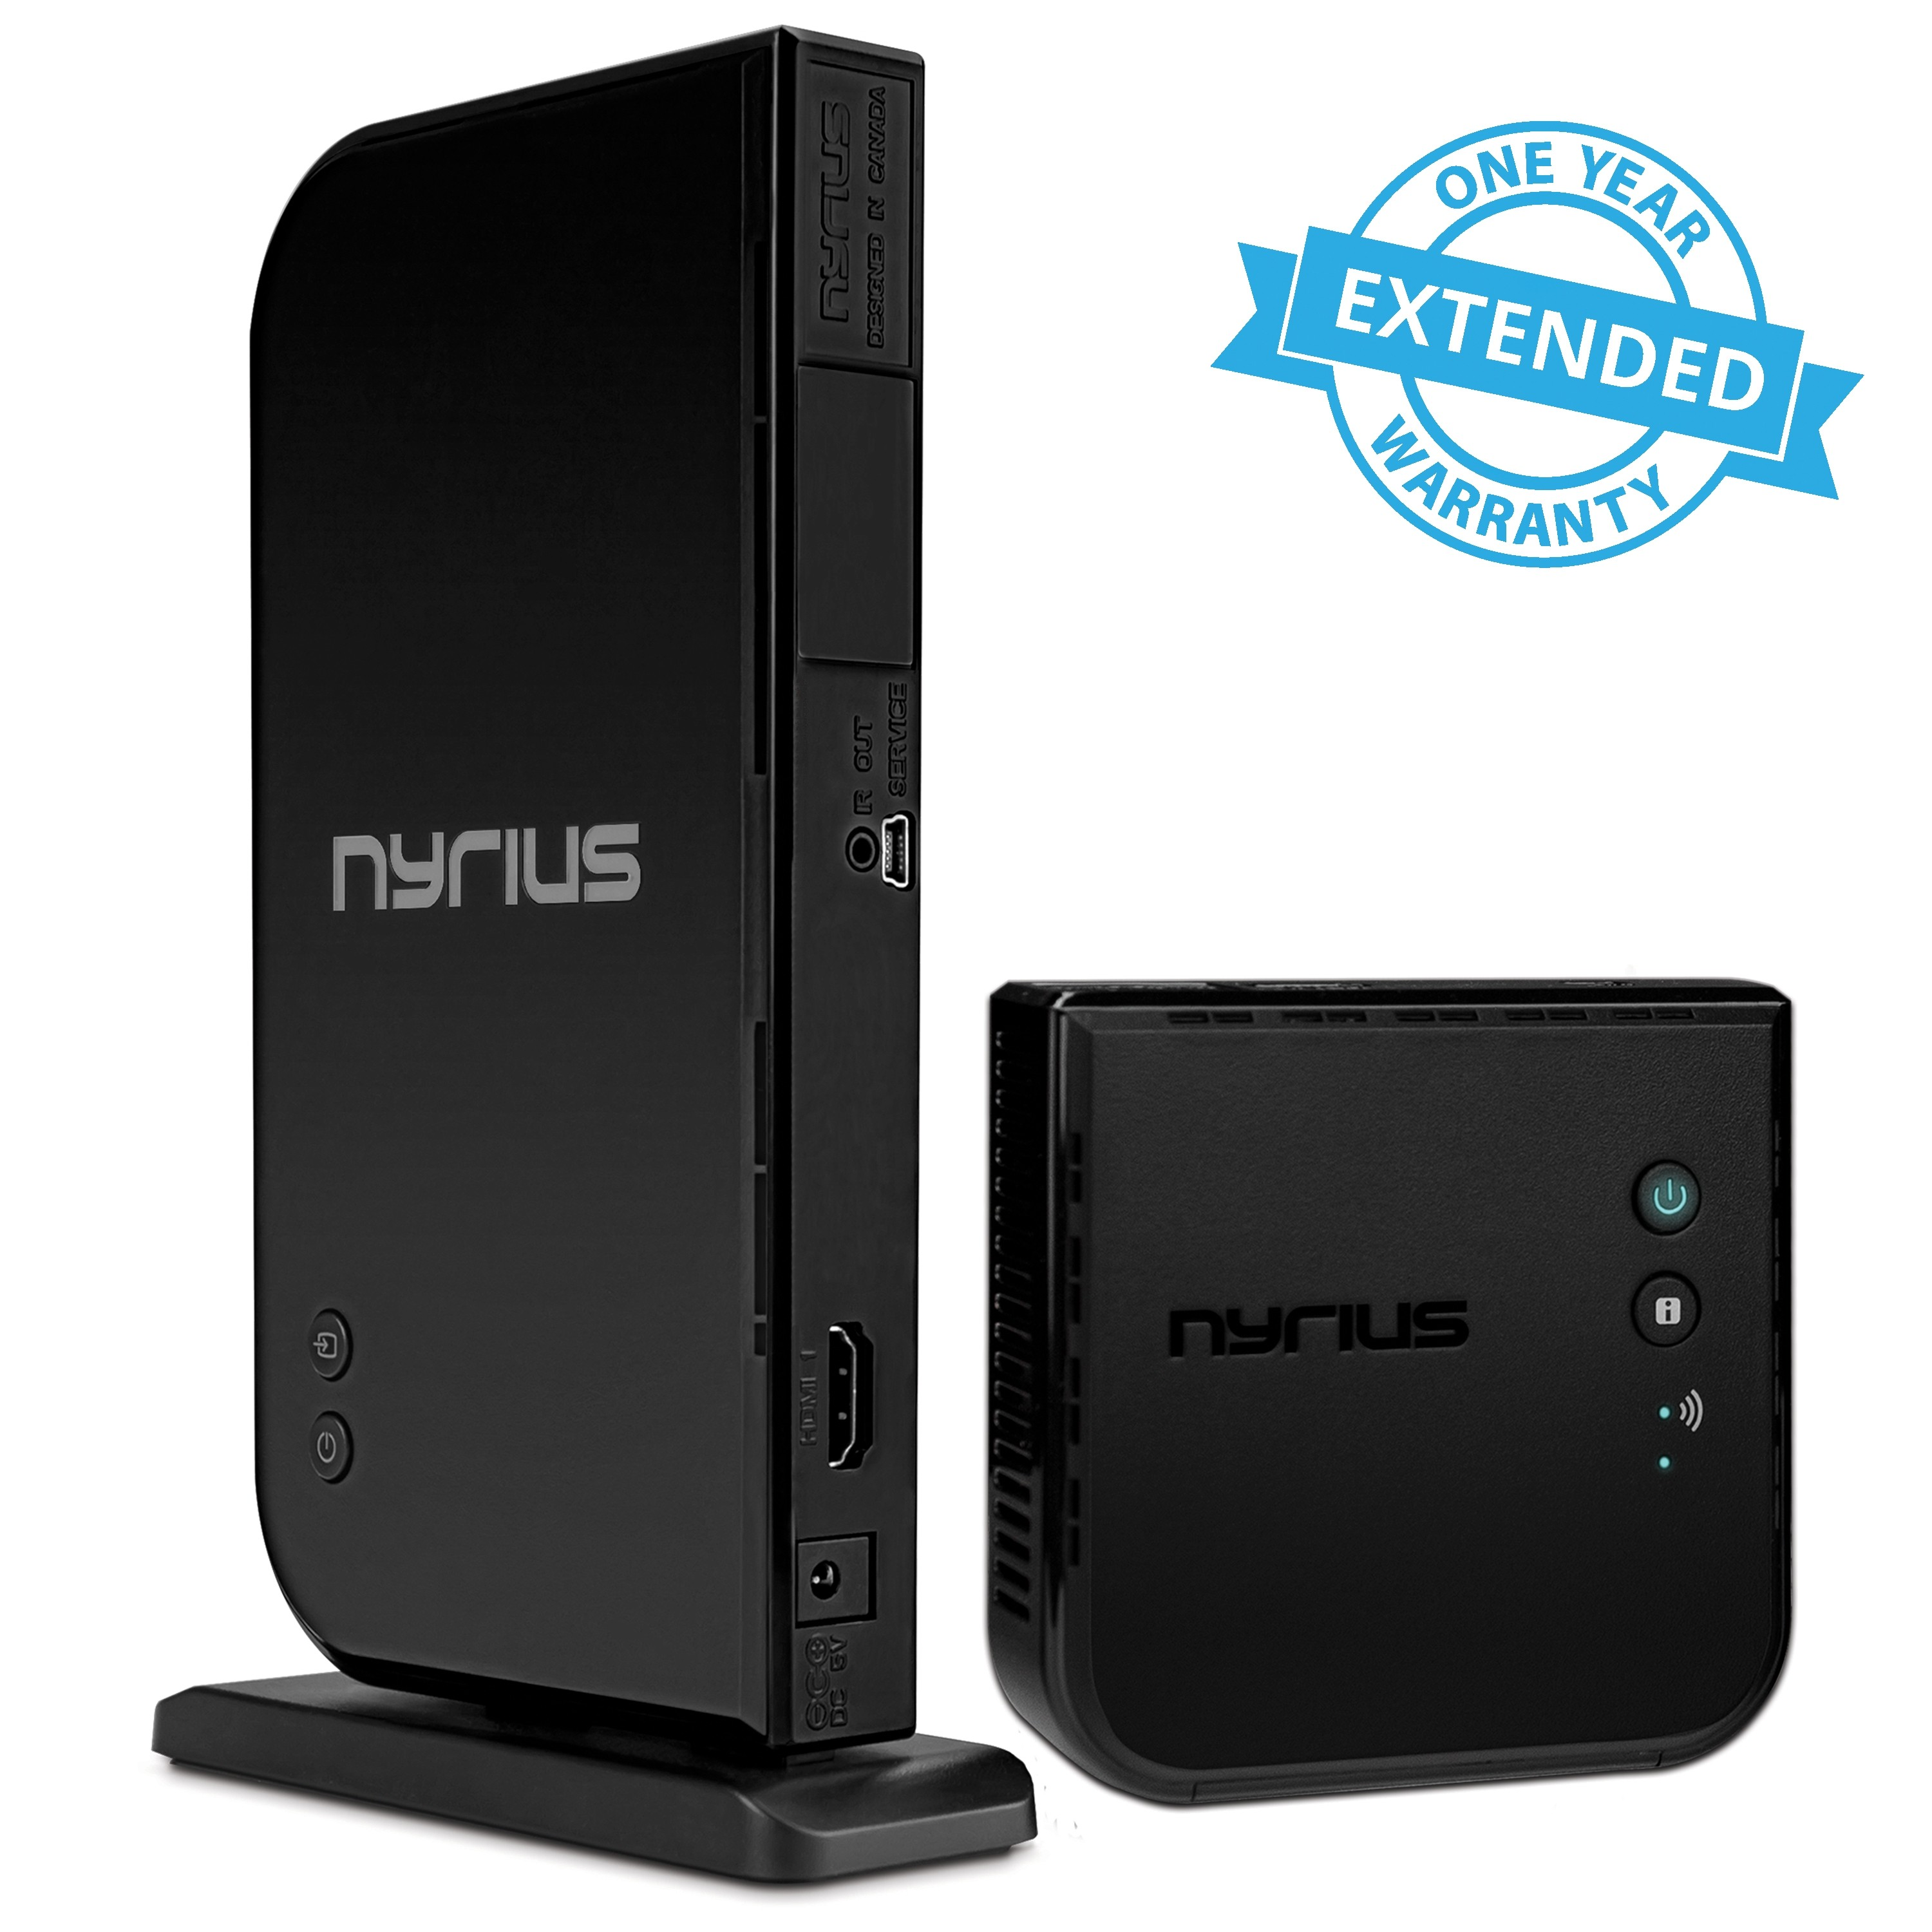 1 Year Extended Warranty for the NAVS500